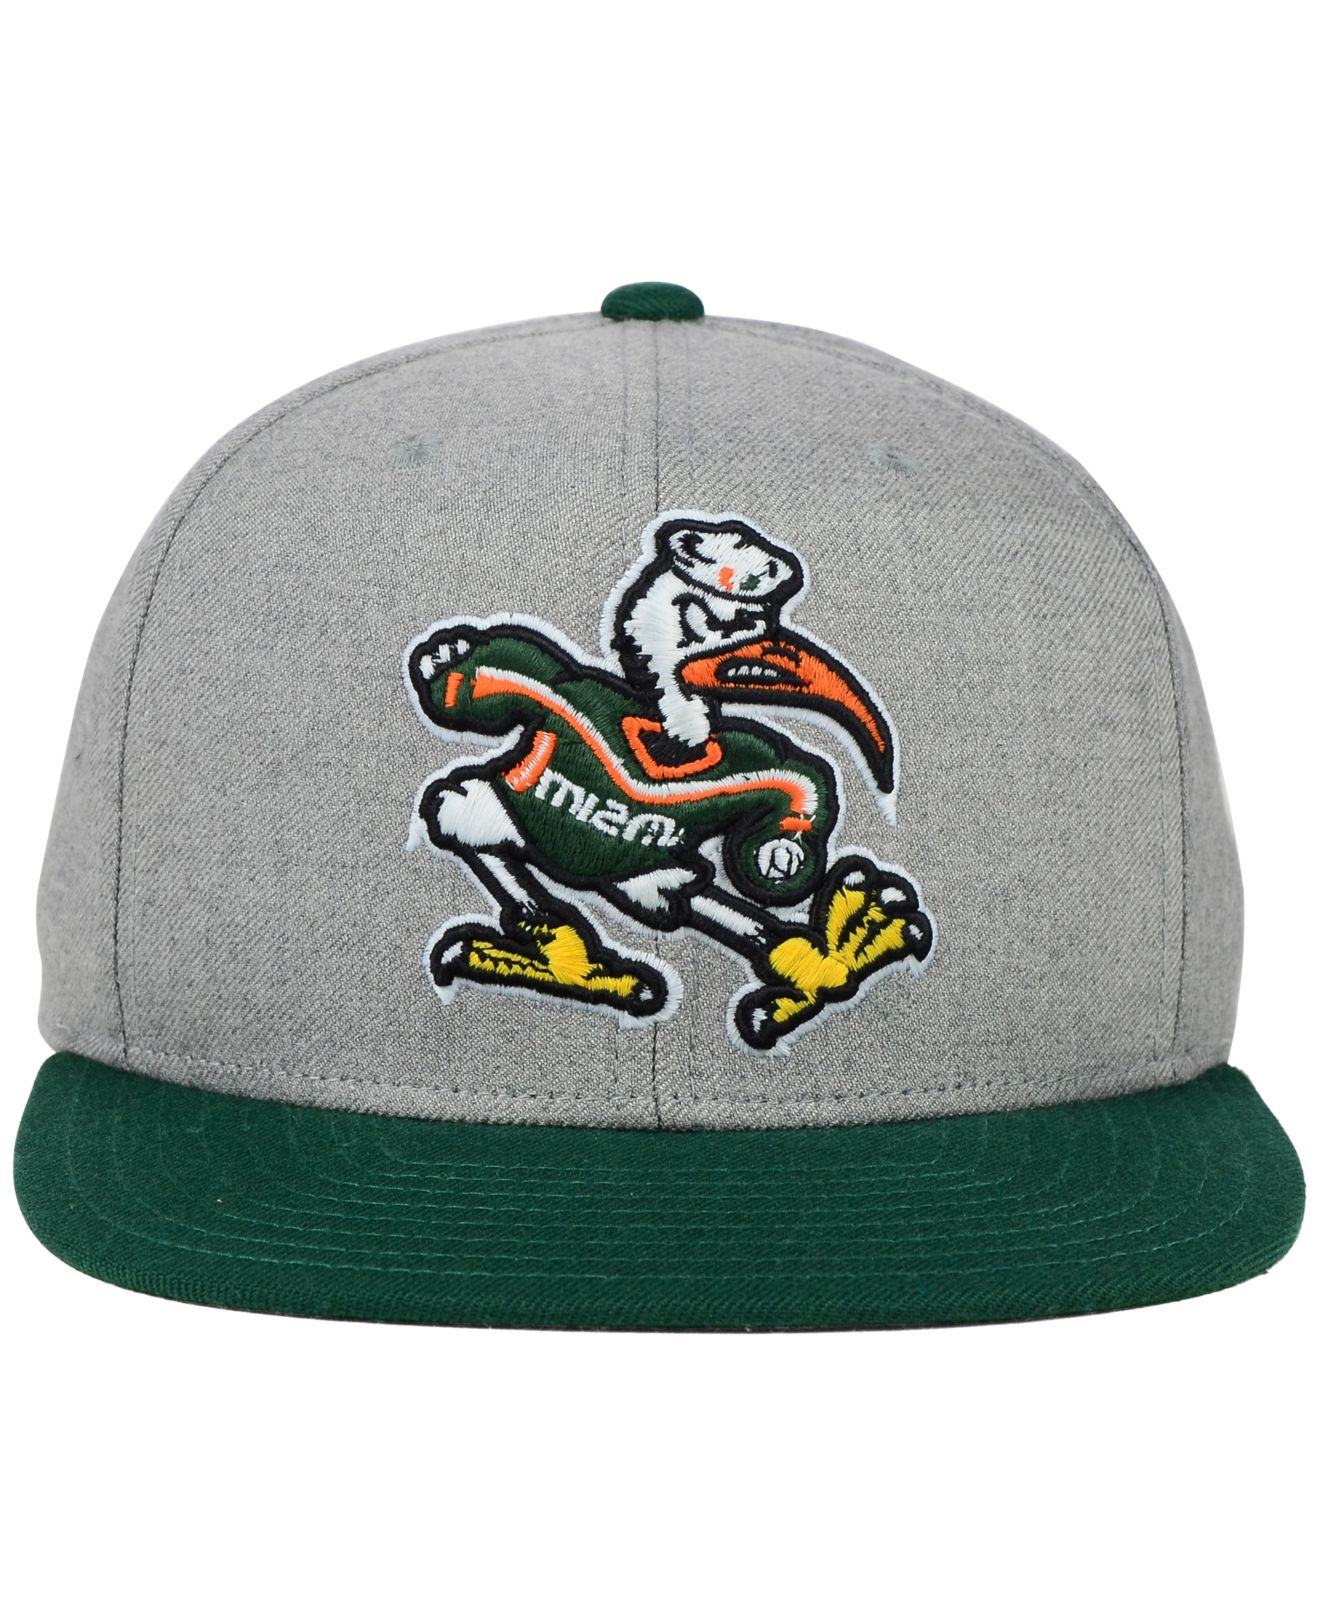 83be3f45f61 Lyst - Sports Licensed Division Adidas Miami Hurricanes Stacked Box Snapback  Cap in Gray for Men